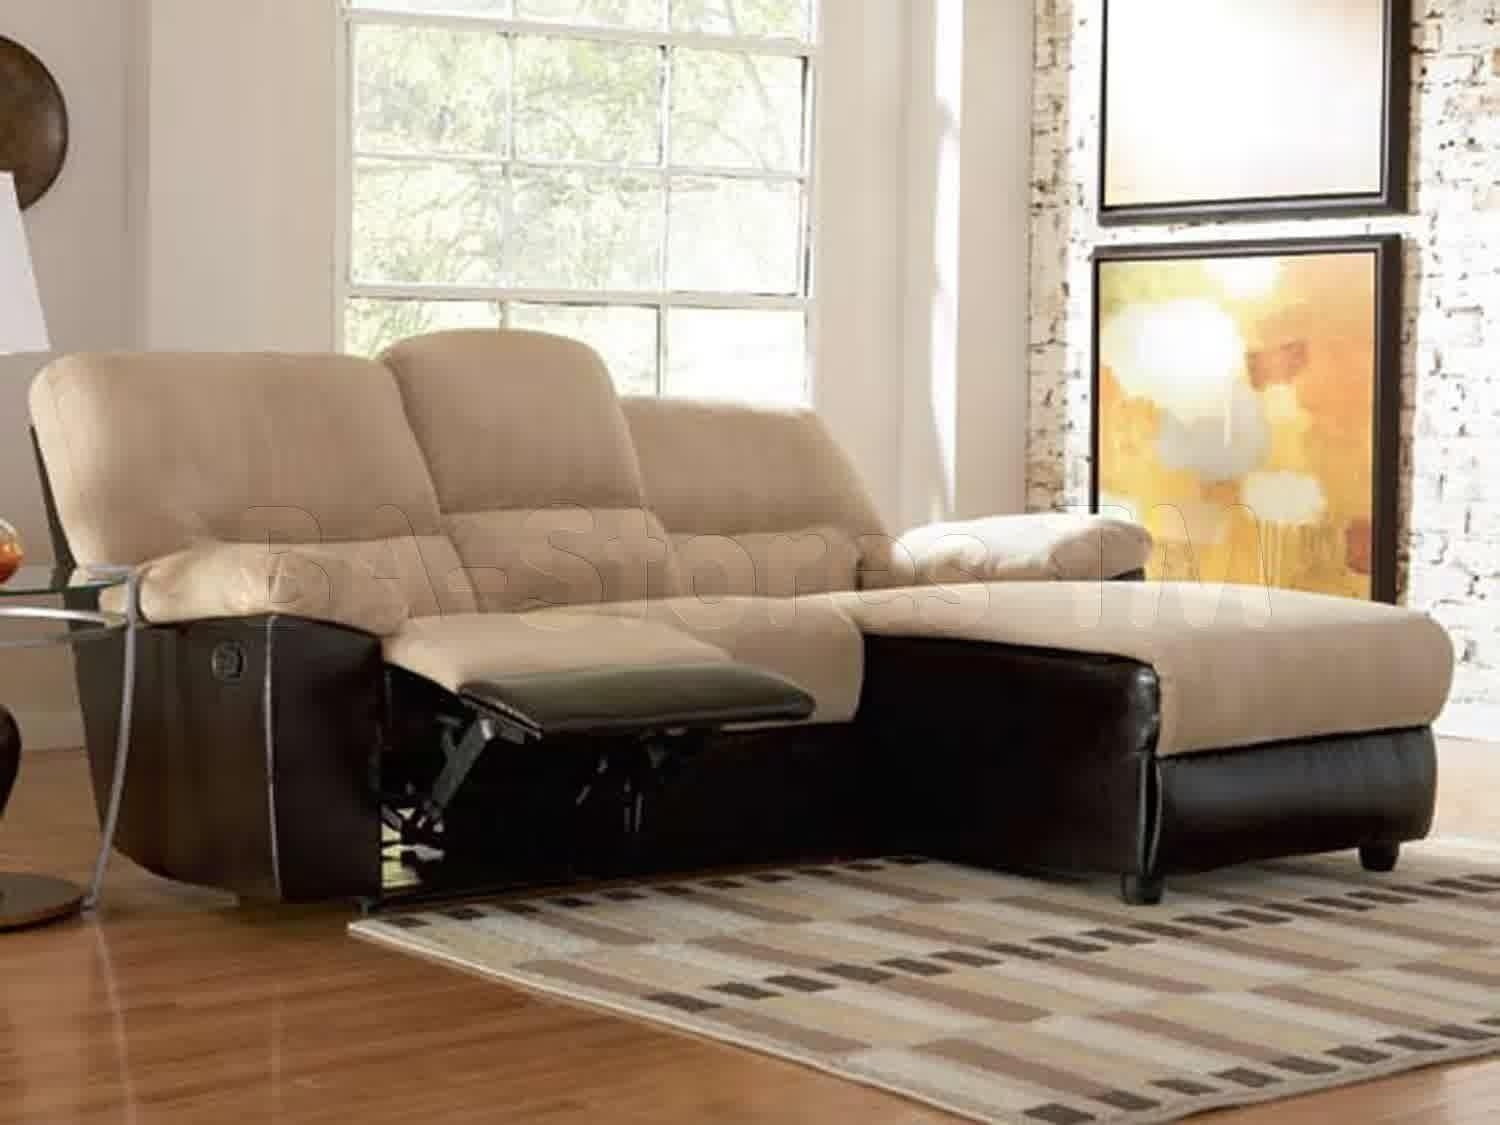 71 Excellent Sofas For Small Apartments Home Design Sectional inside Apartment Sectional